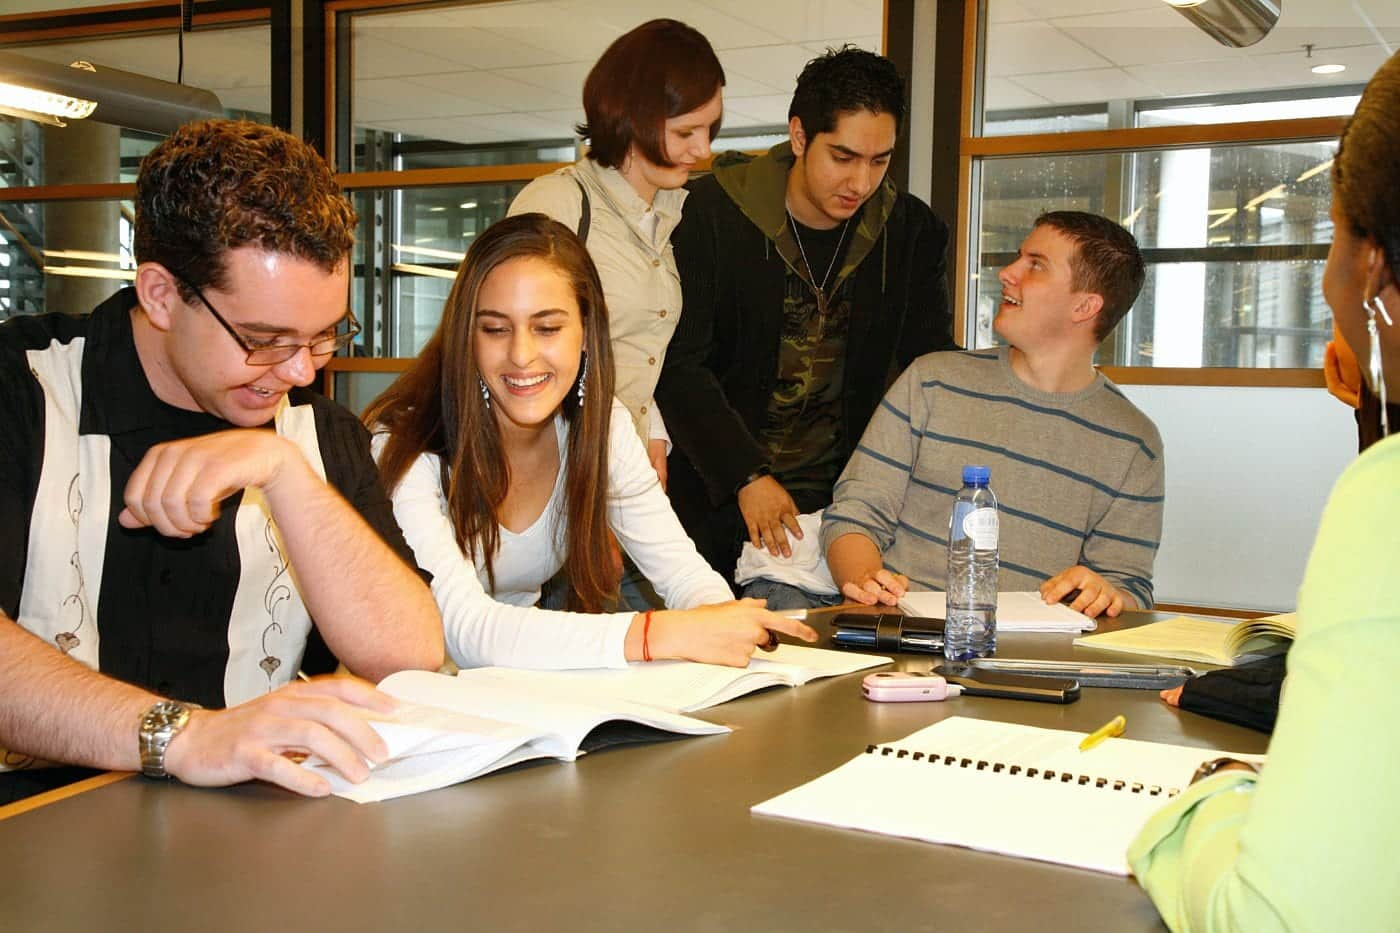 Image of your learning style group studying